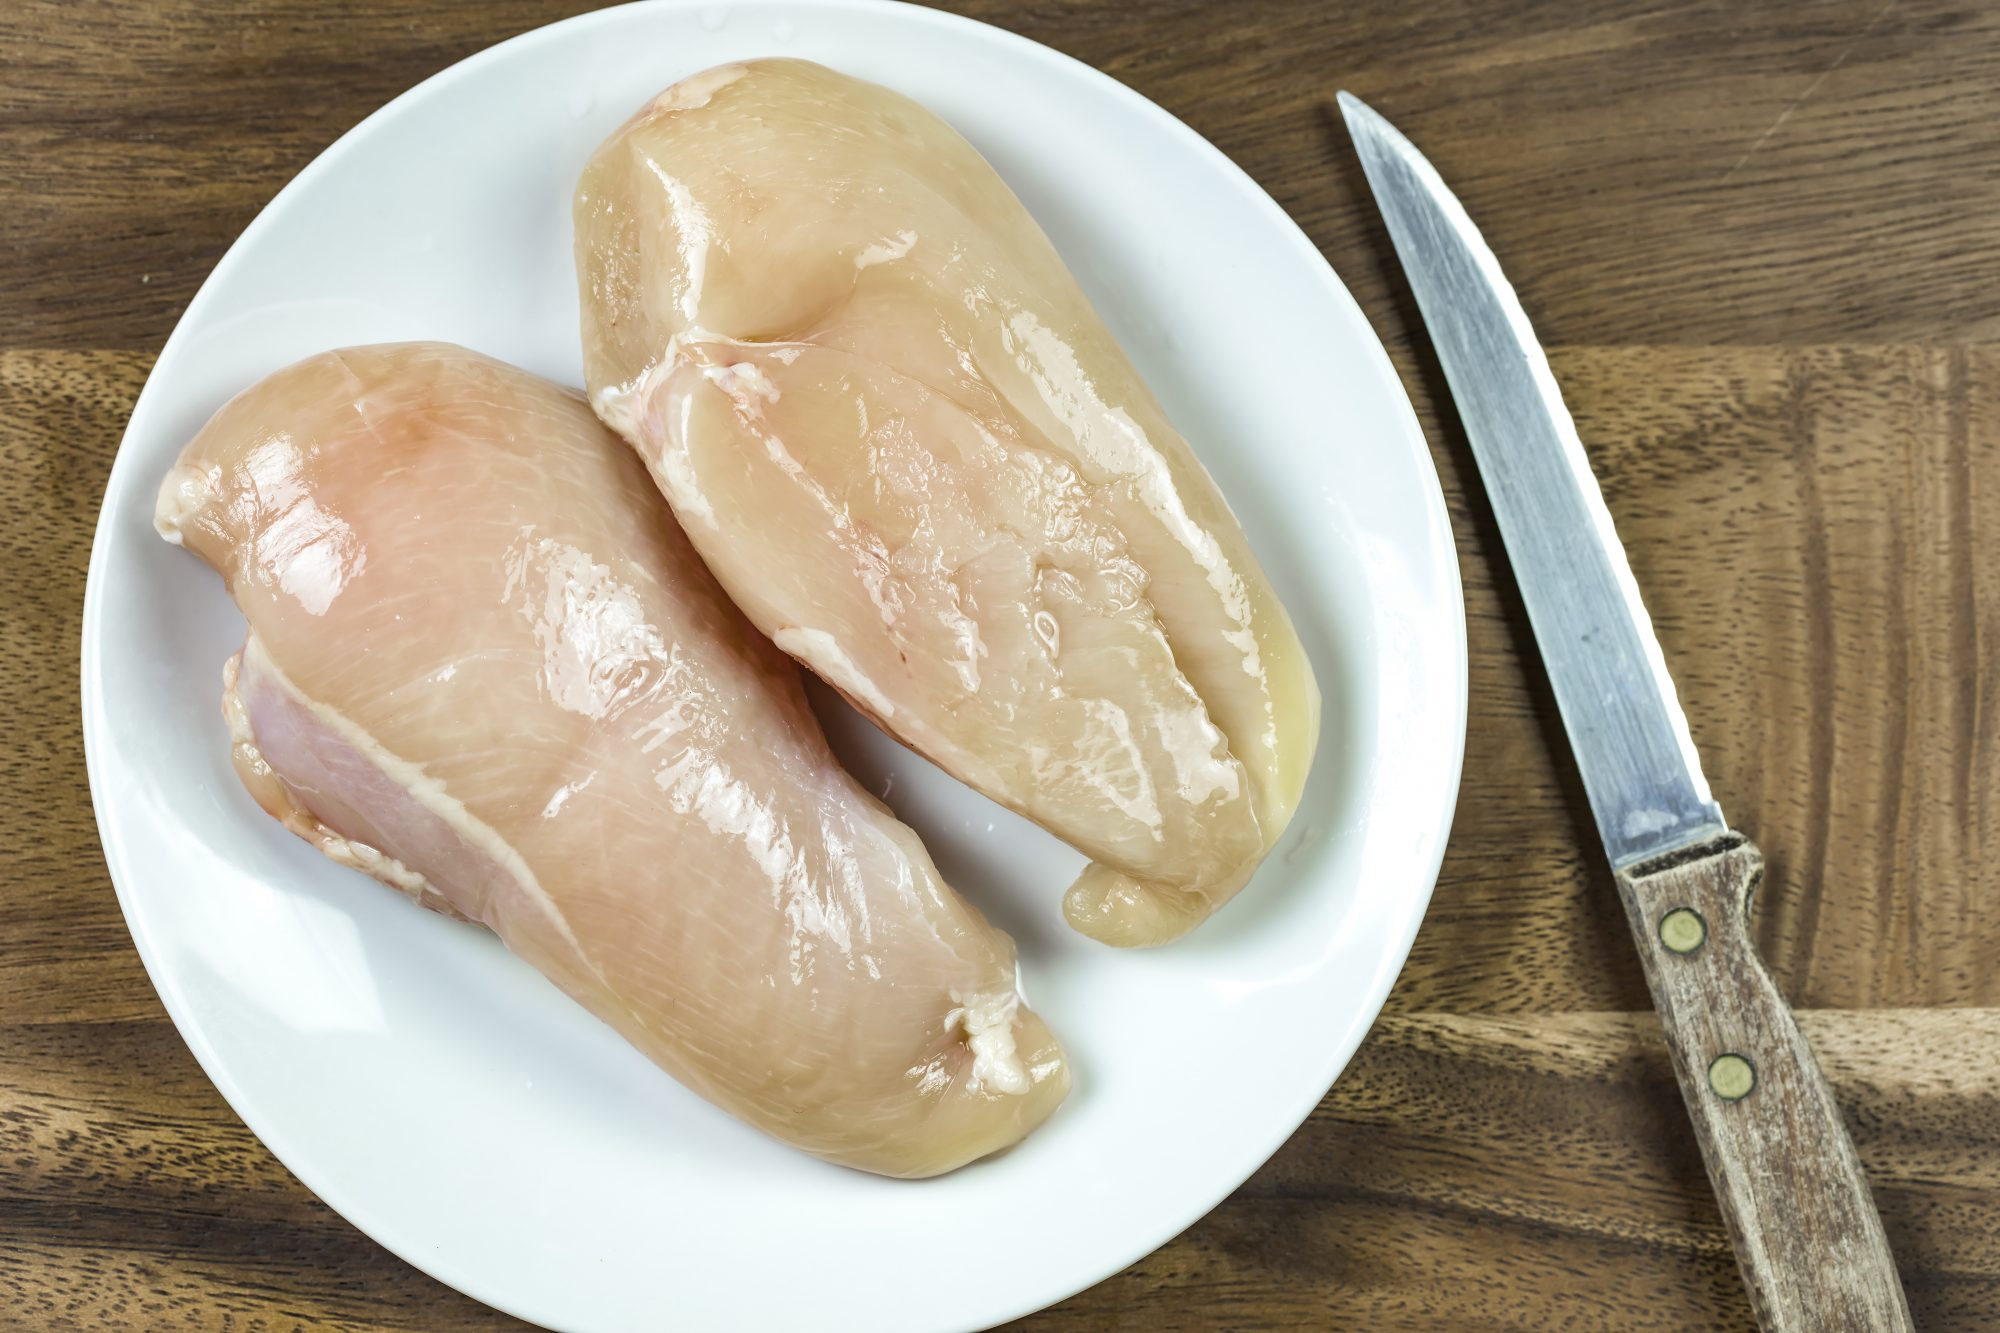 CDC Says Not to Wash Your Chicken, and the Internet IsConfused